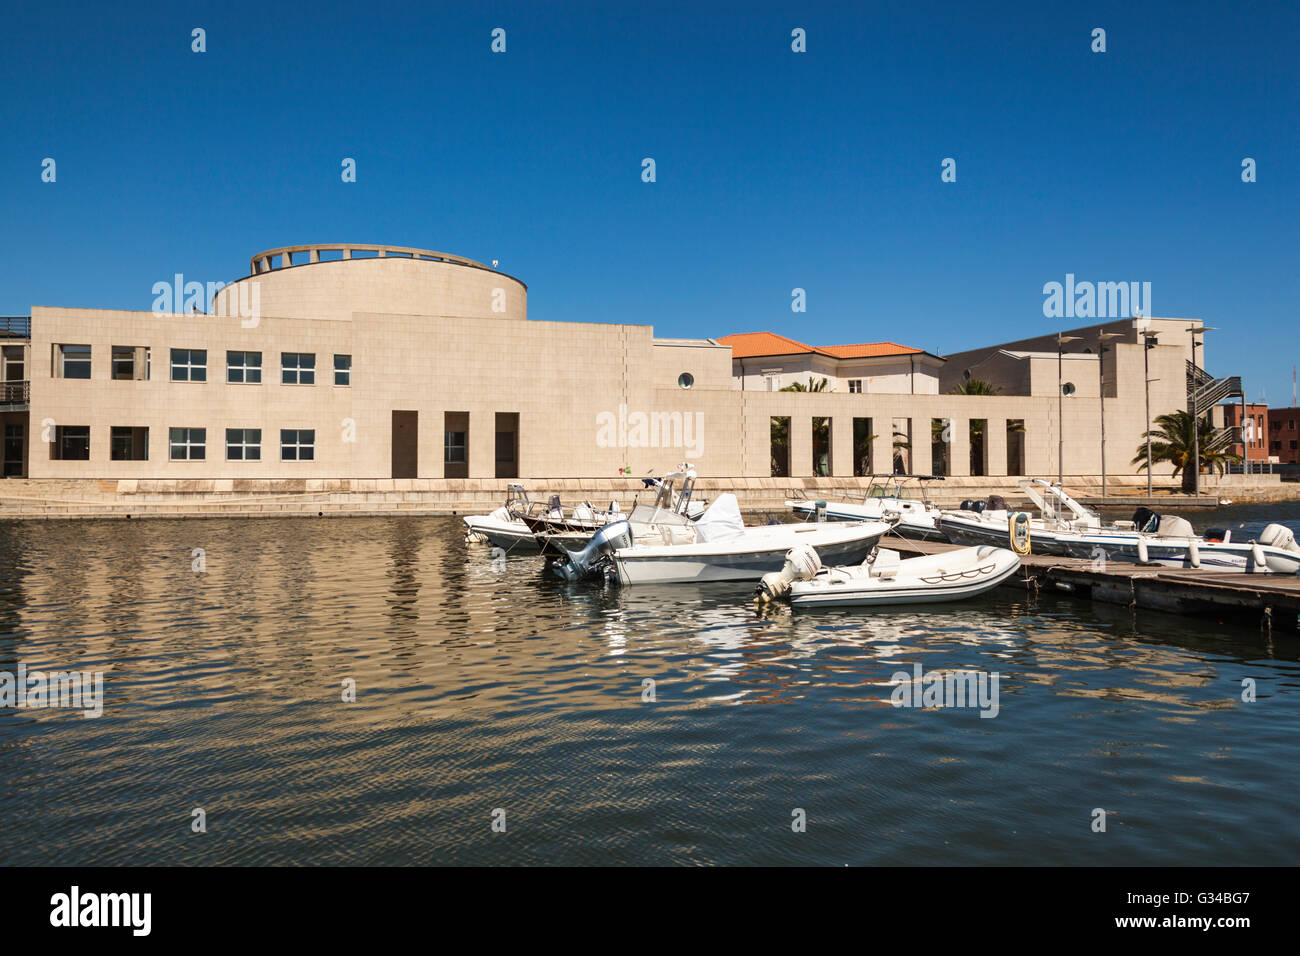 National Archaeology Museum and Museo Del Mare, Olbia, Sardinia, Italy - Stock Image